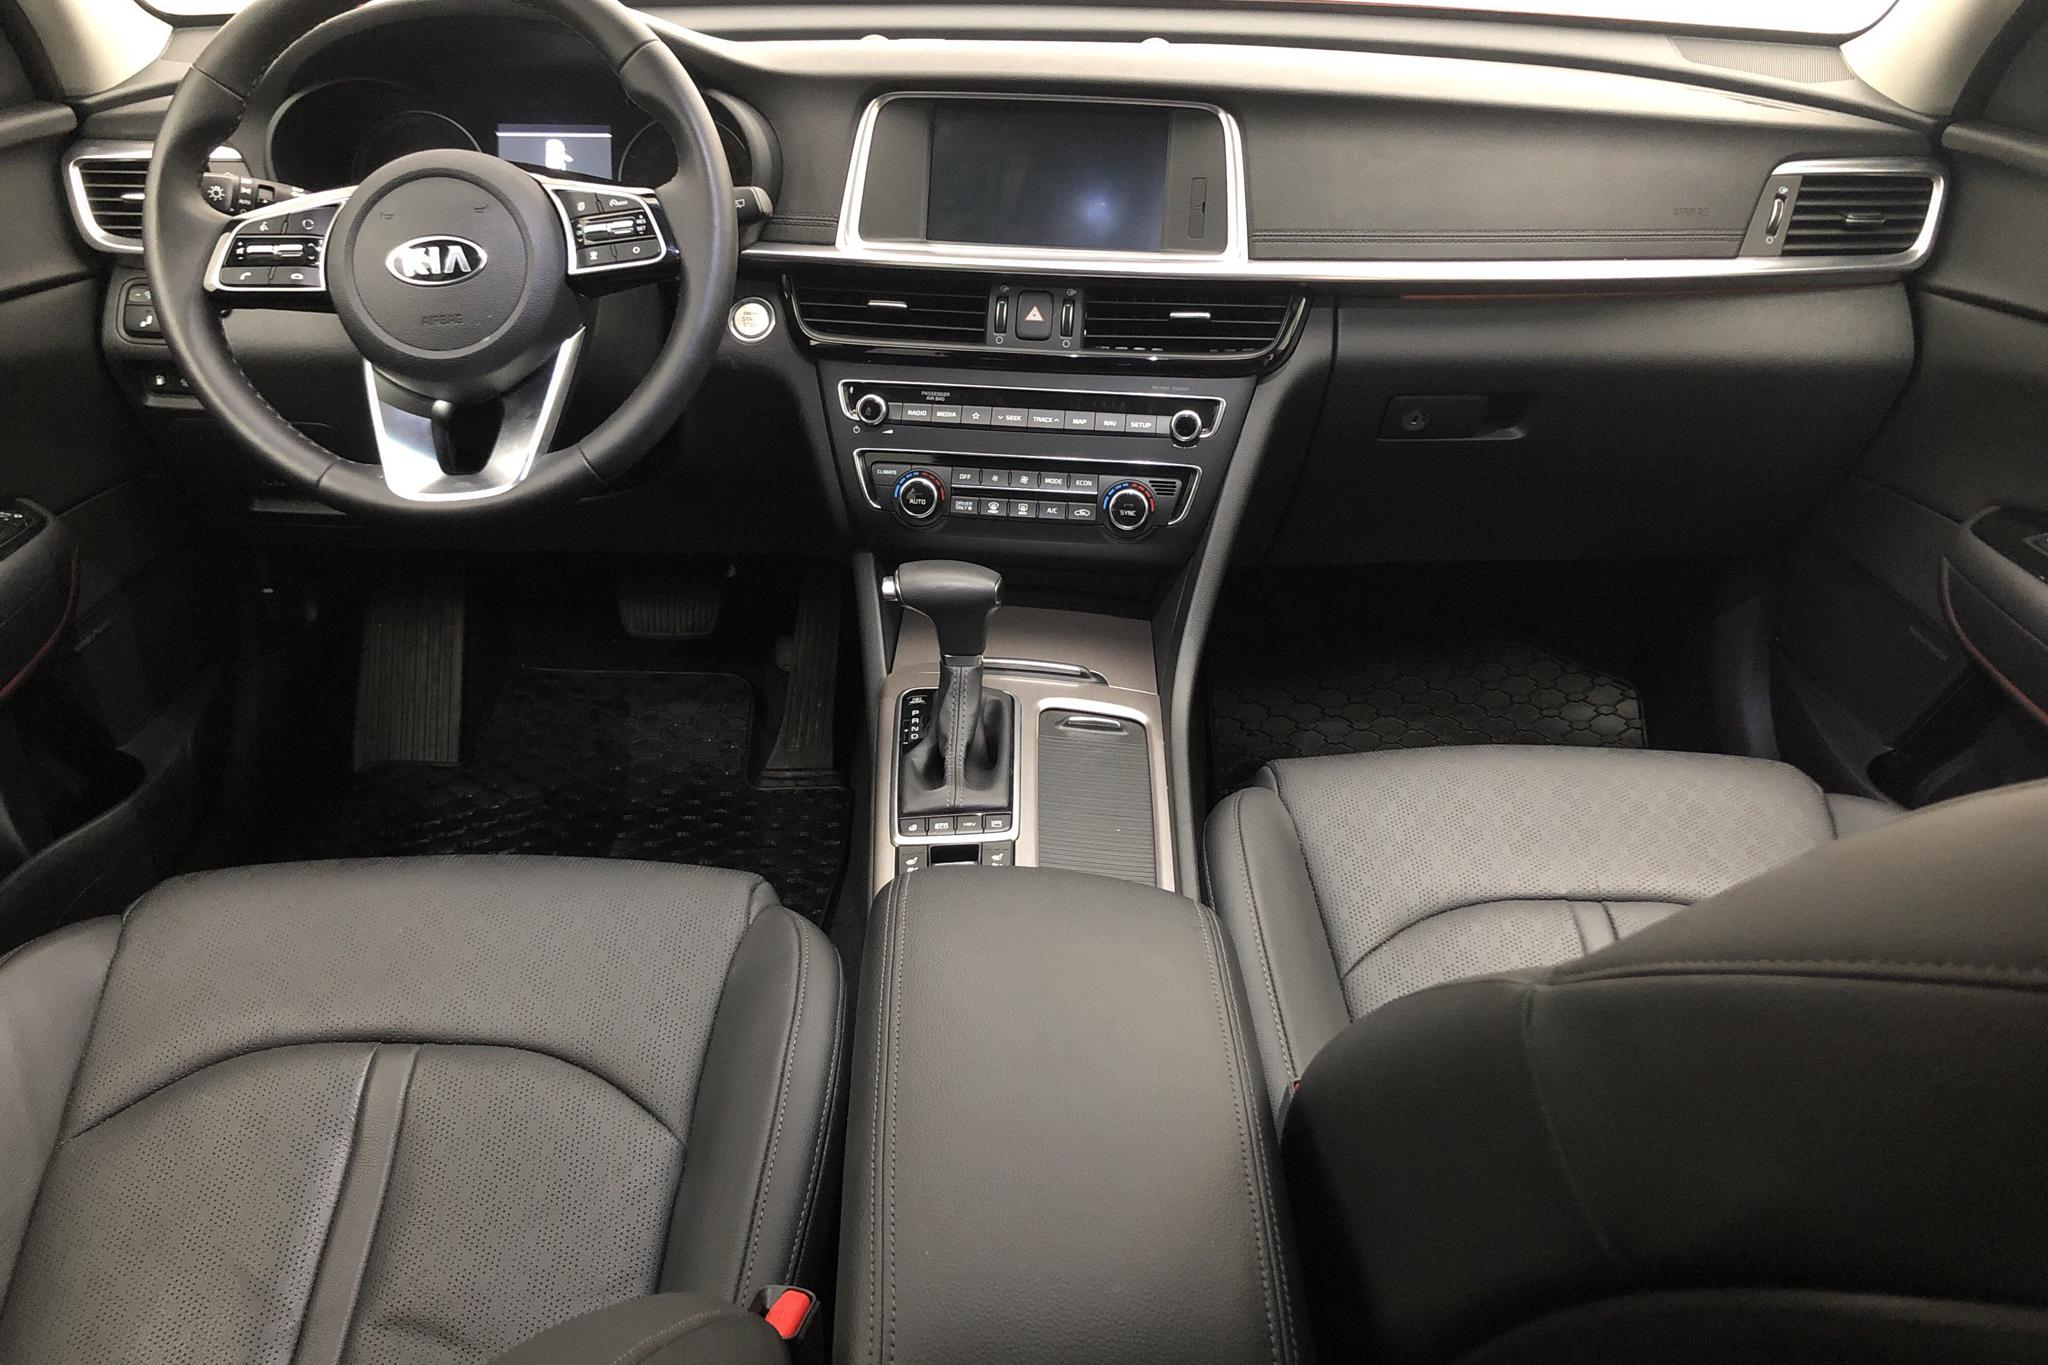 KIA Optima 2.0 GDi Plug-in Hybrid SW (205hk) - 13 470 km - Automatic - red - 2019